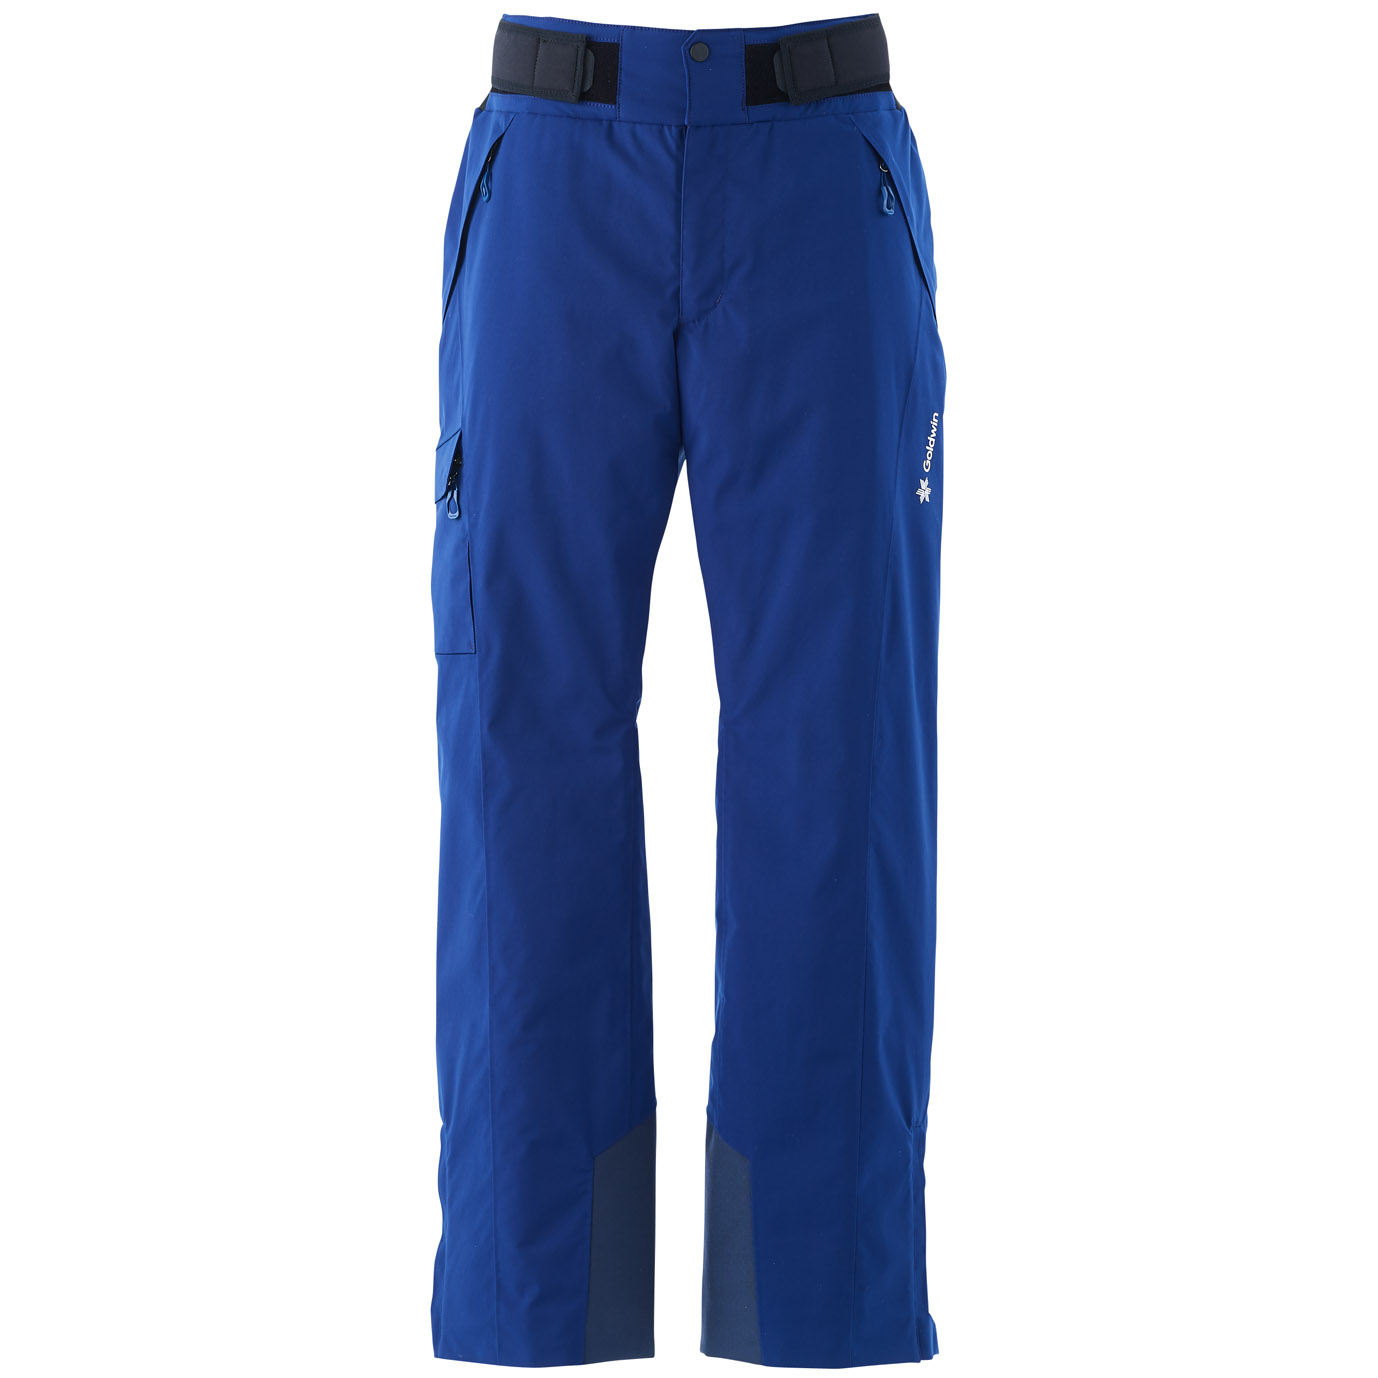 GOLDWIN G31812 MEN ATLAS PANTS NAVY BLU - 2019